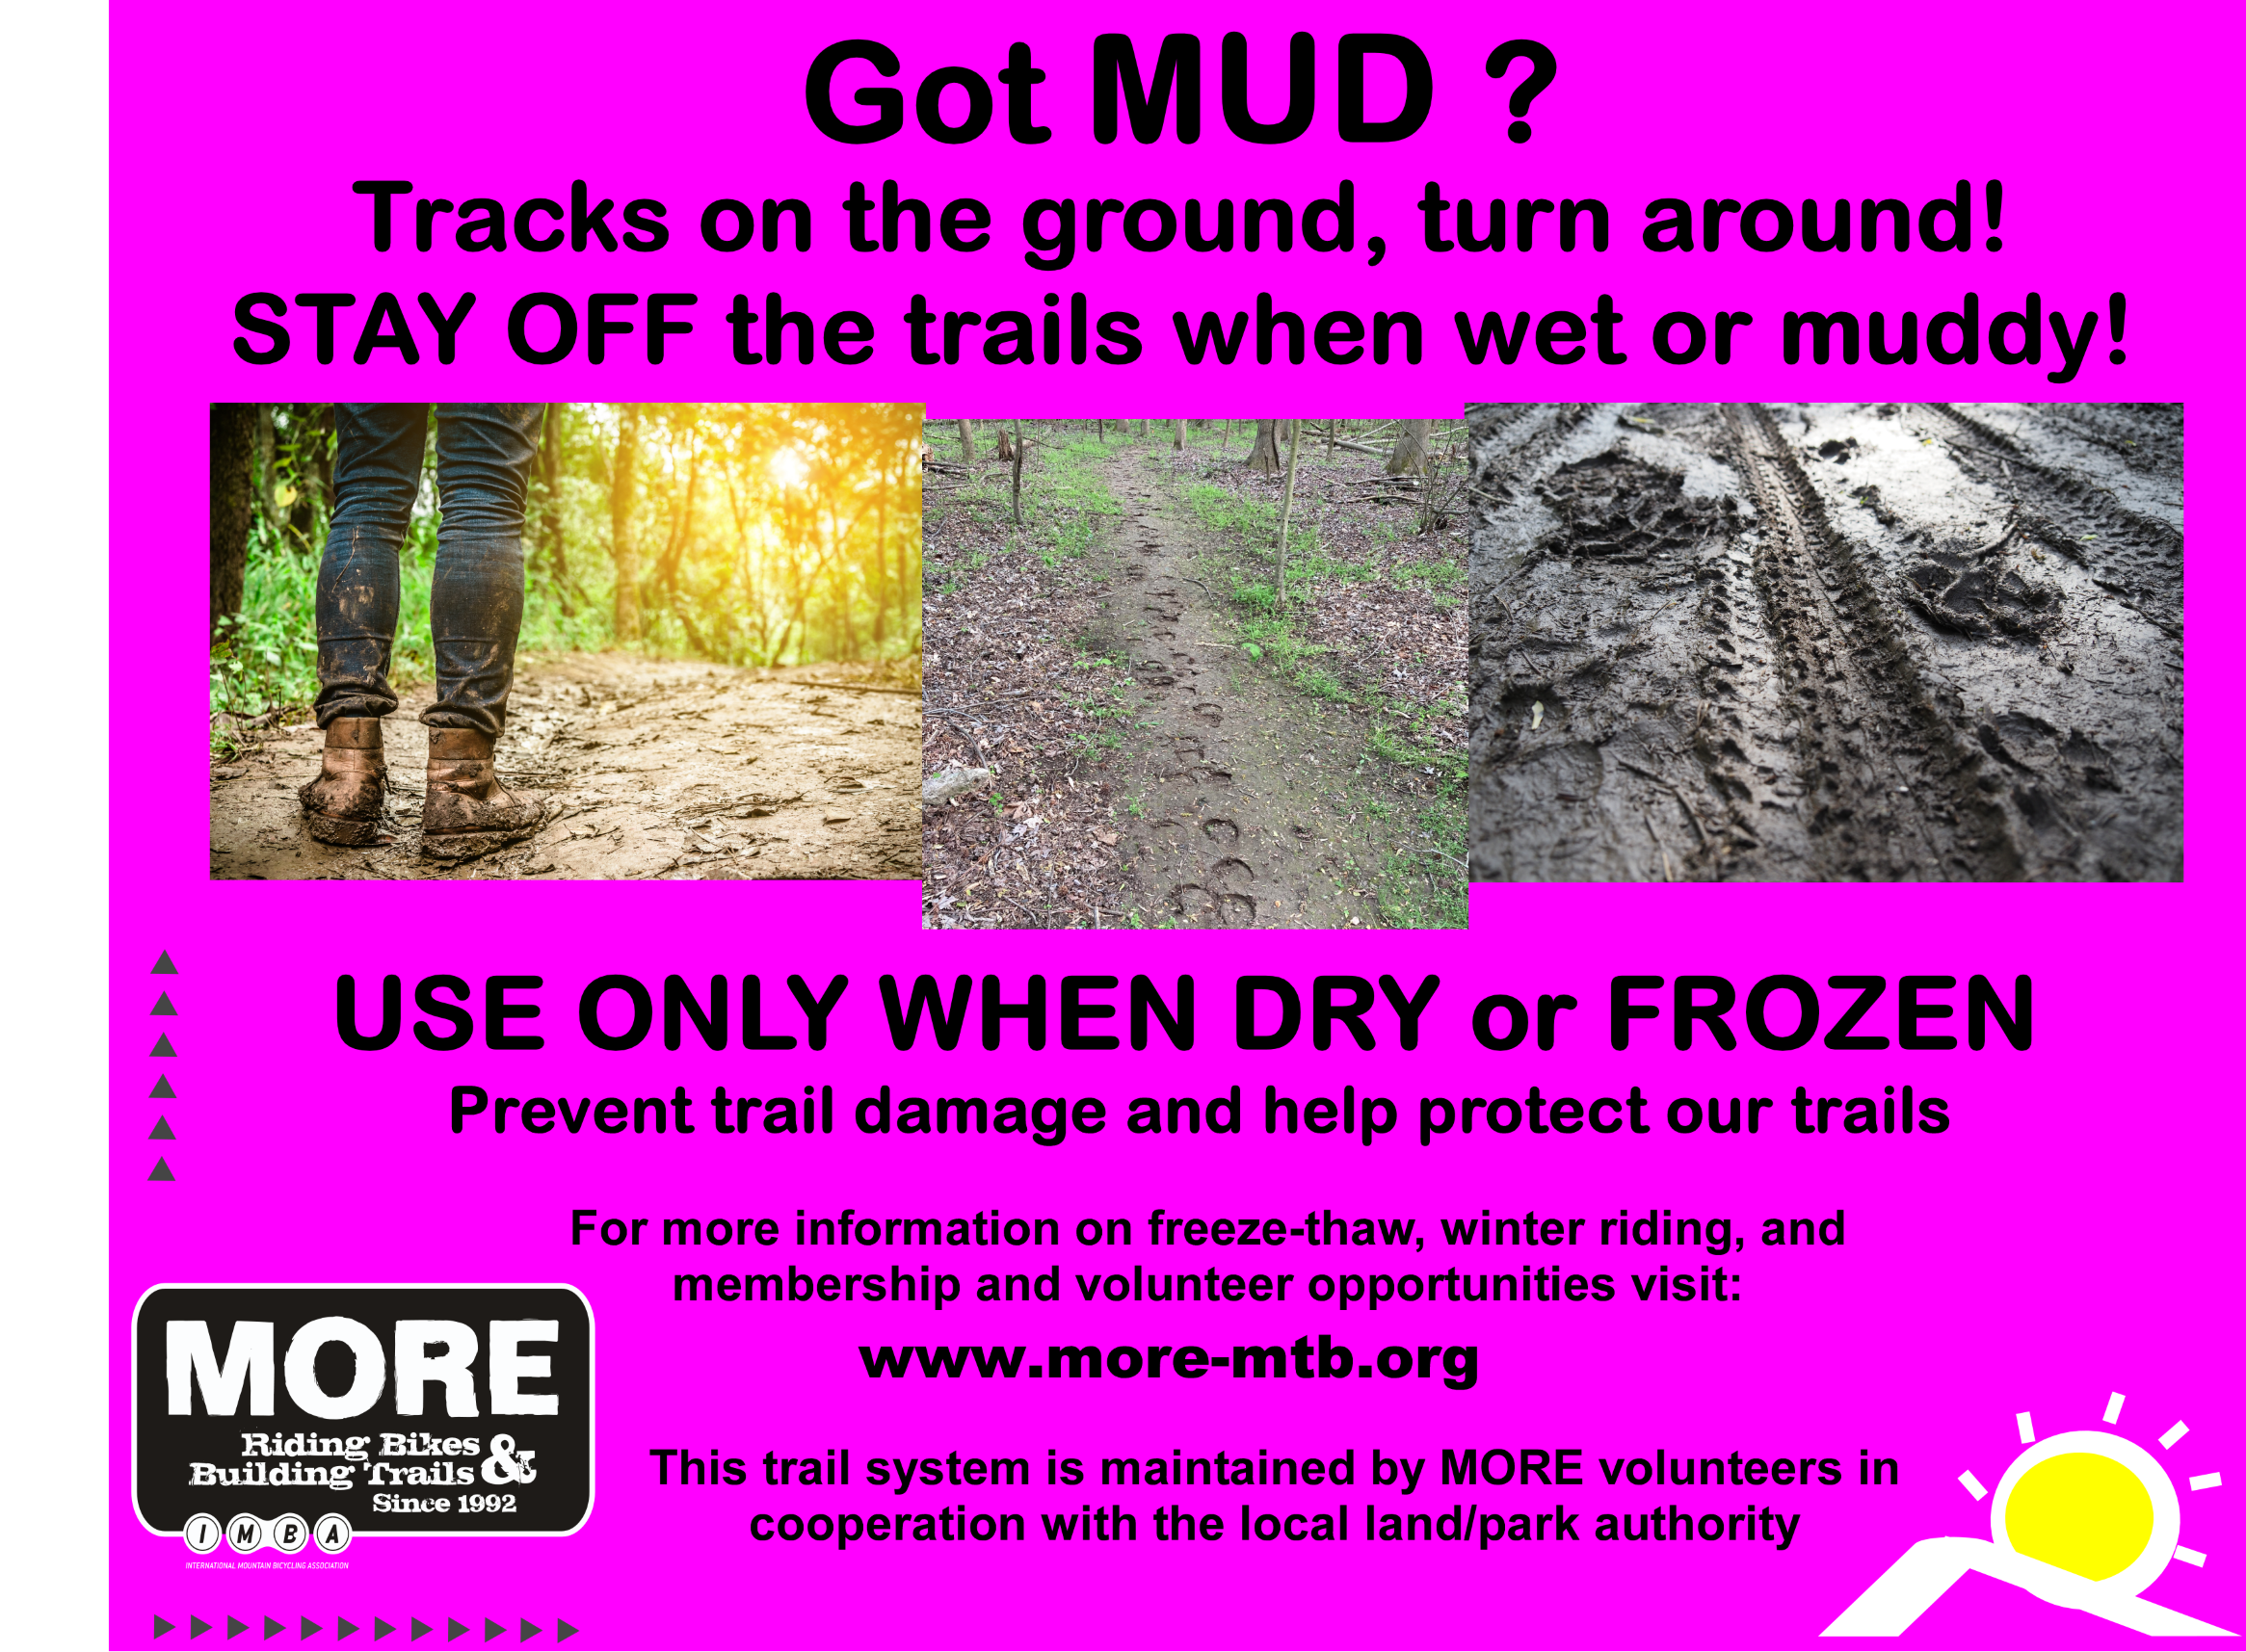 Don'r ride muddy trails!